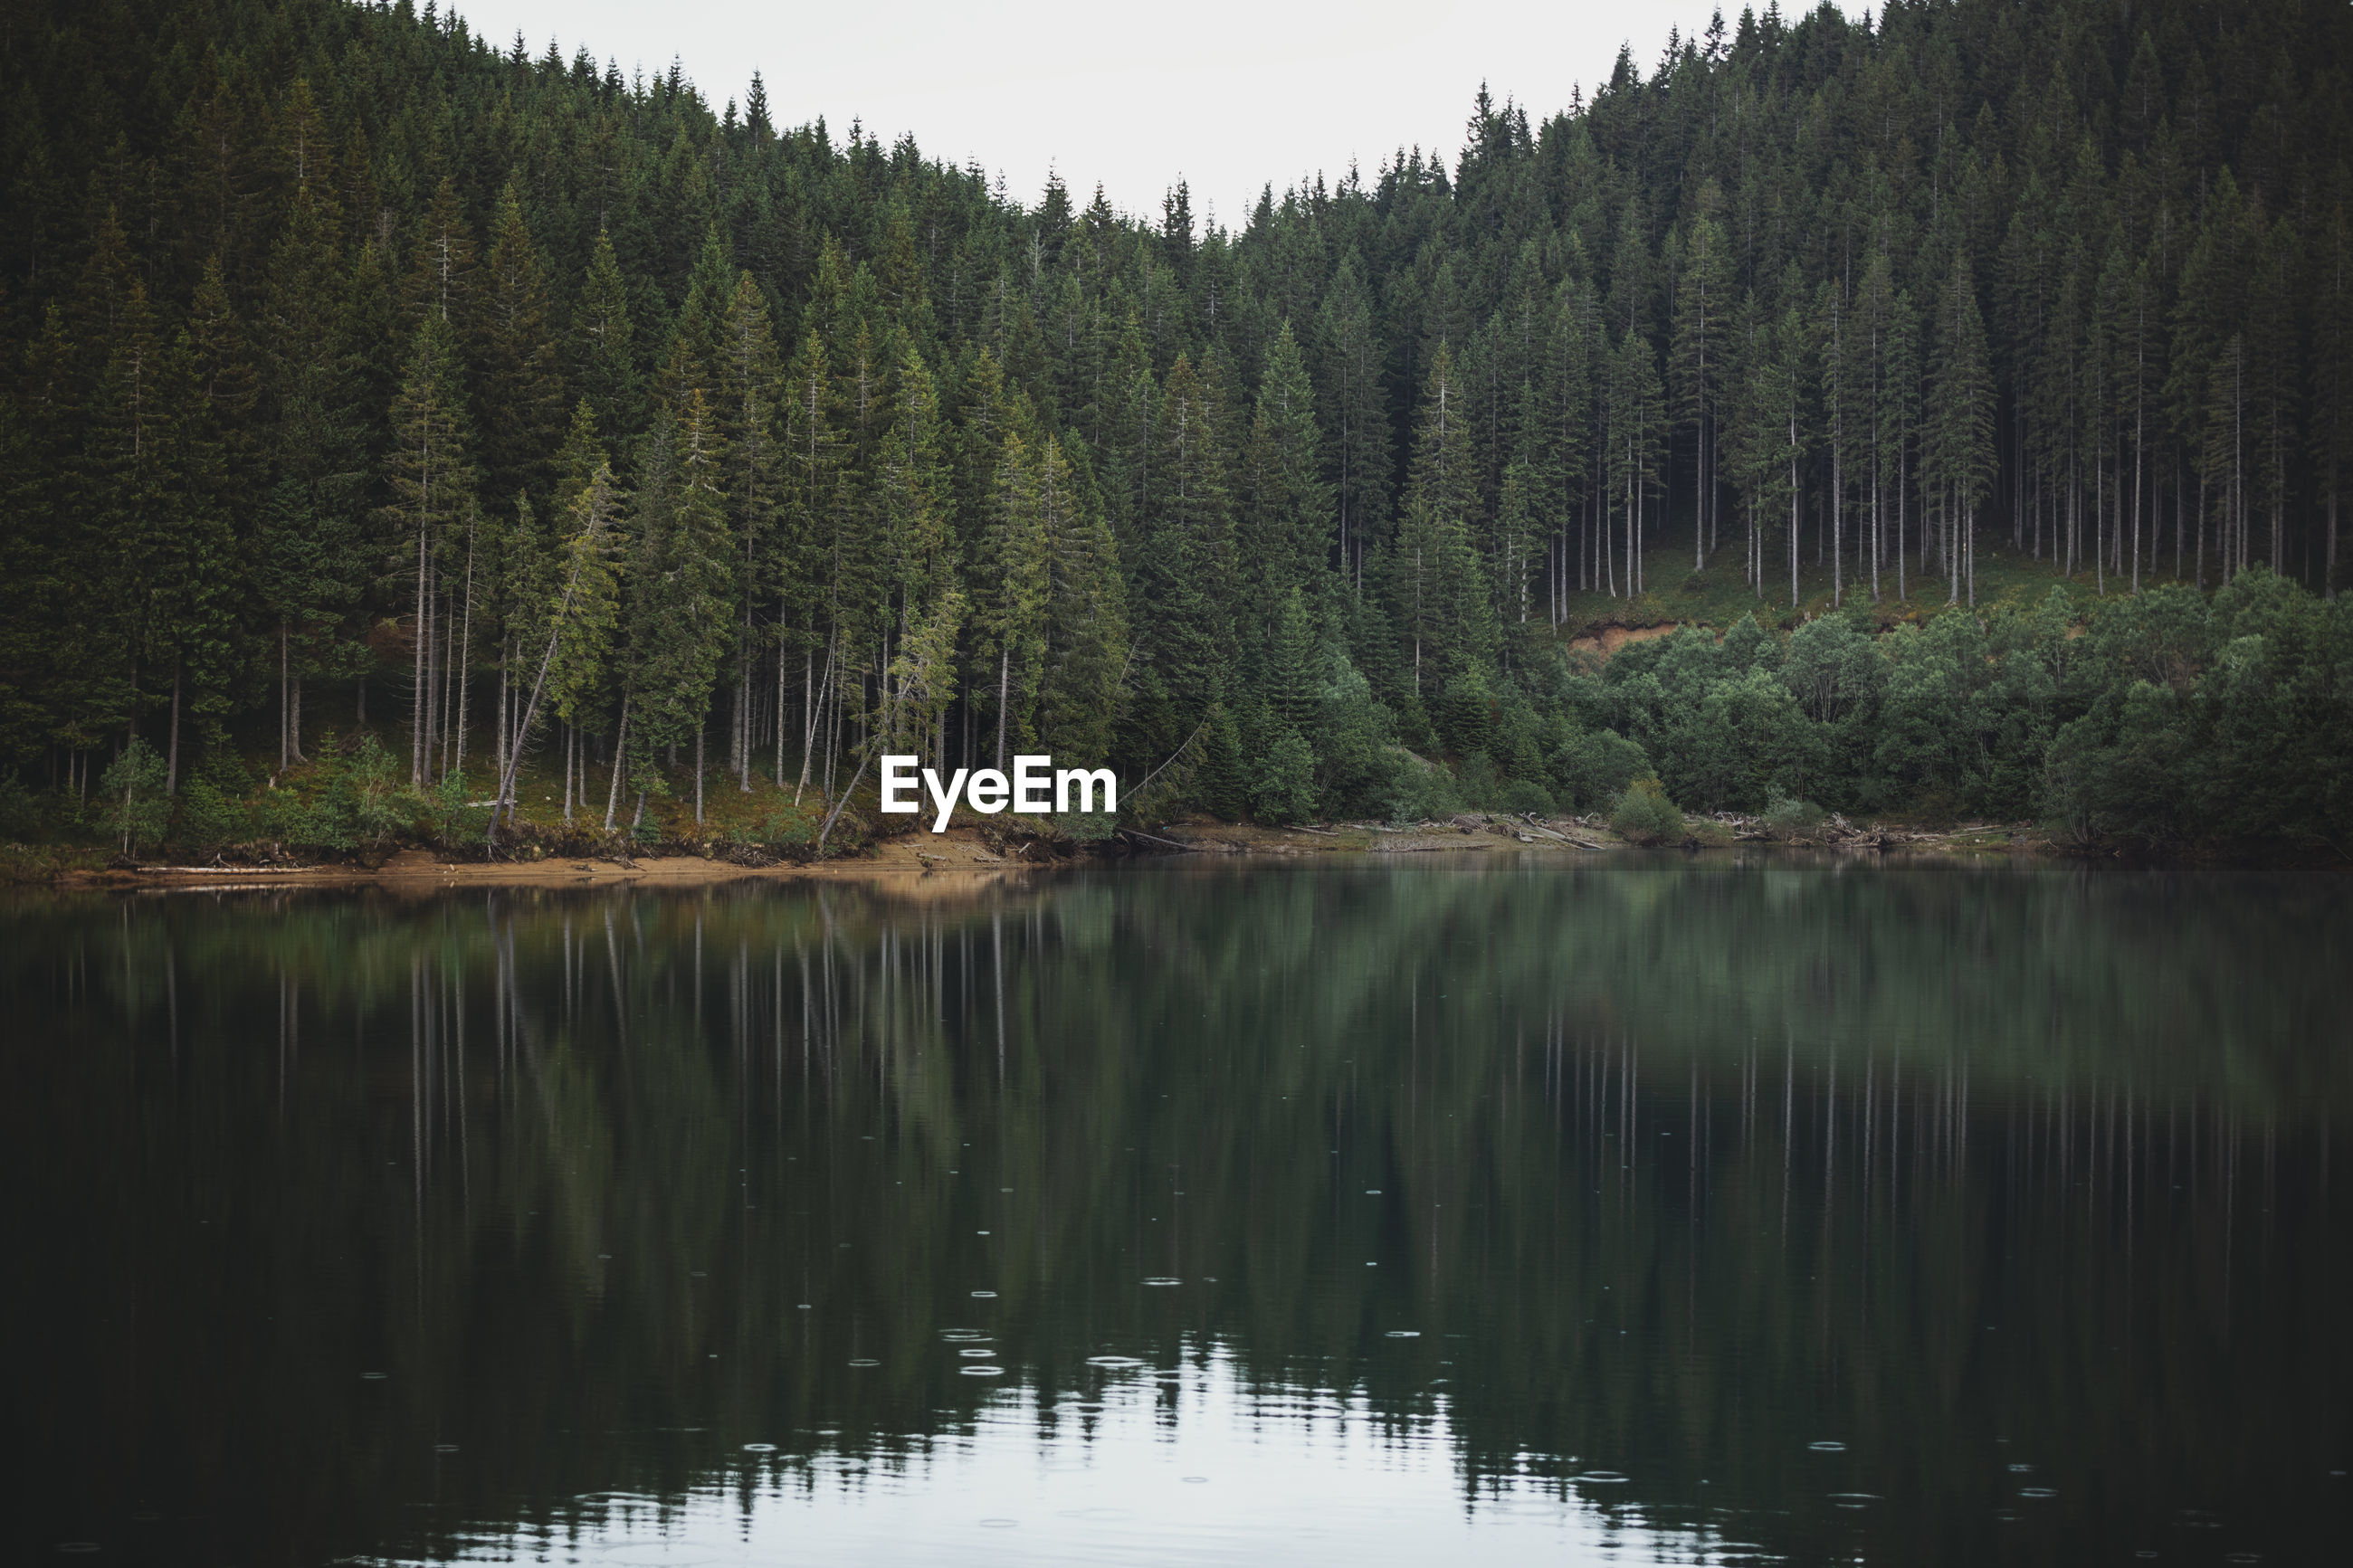 SCENIC VIEW OF LAKE WITH TREES IN FOREST